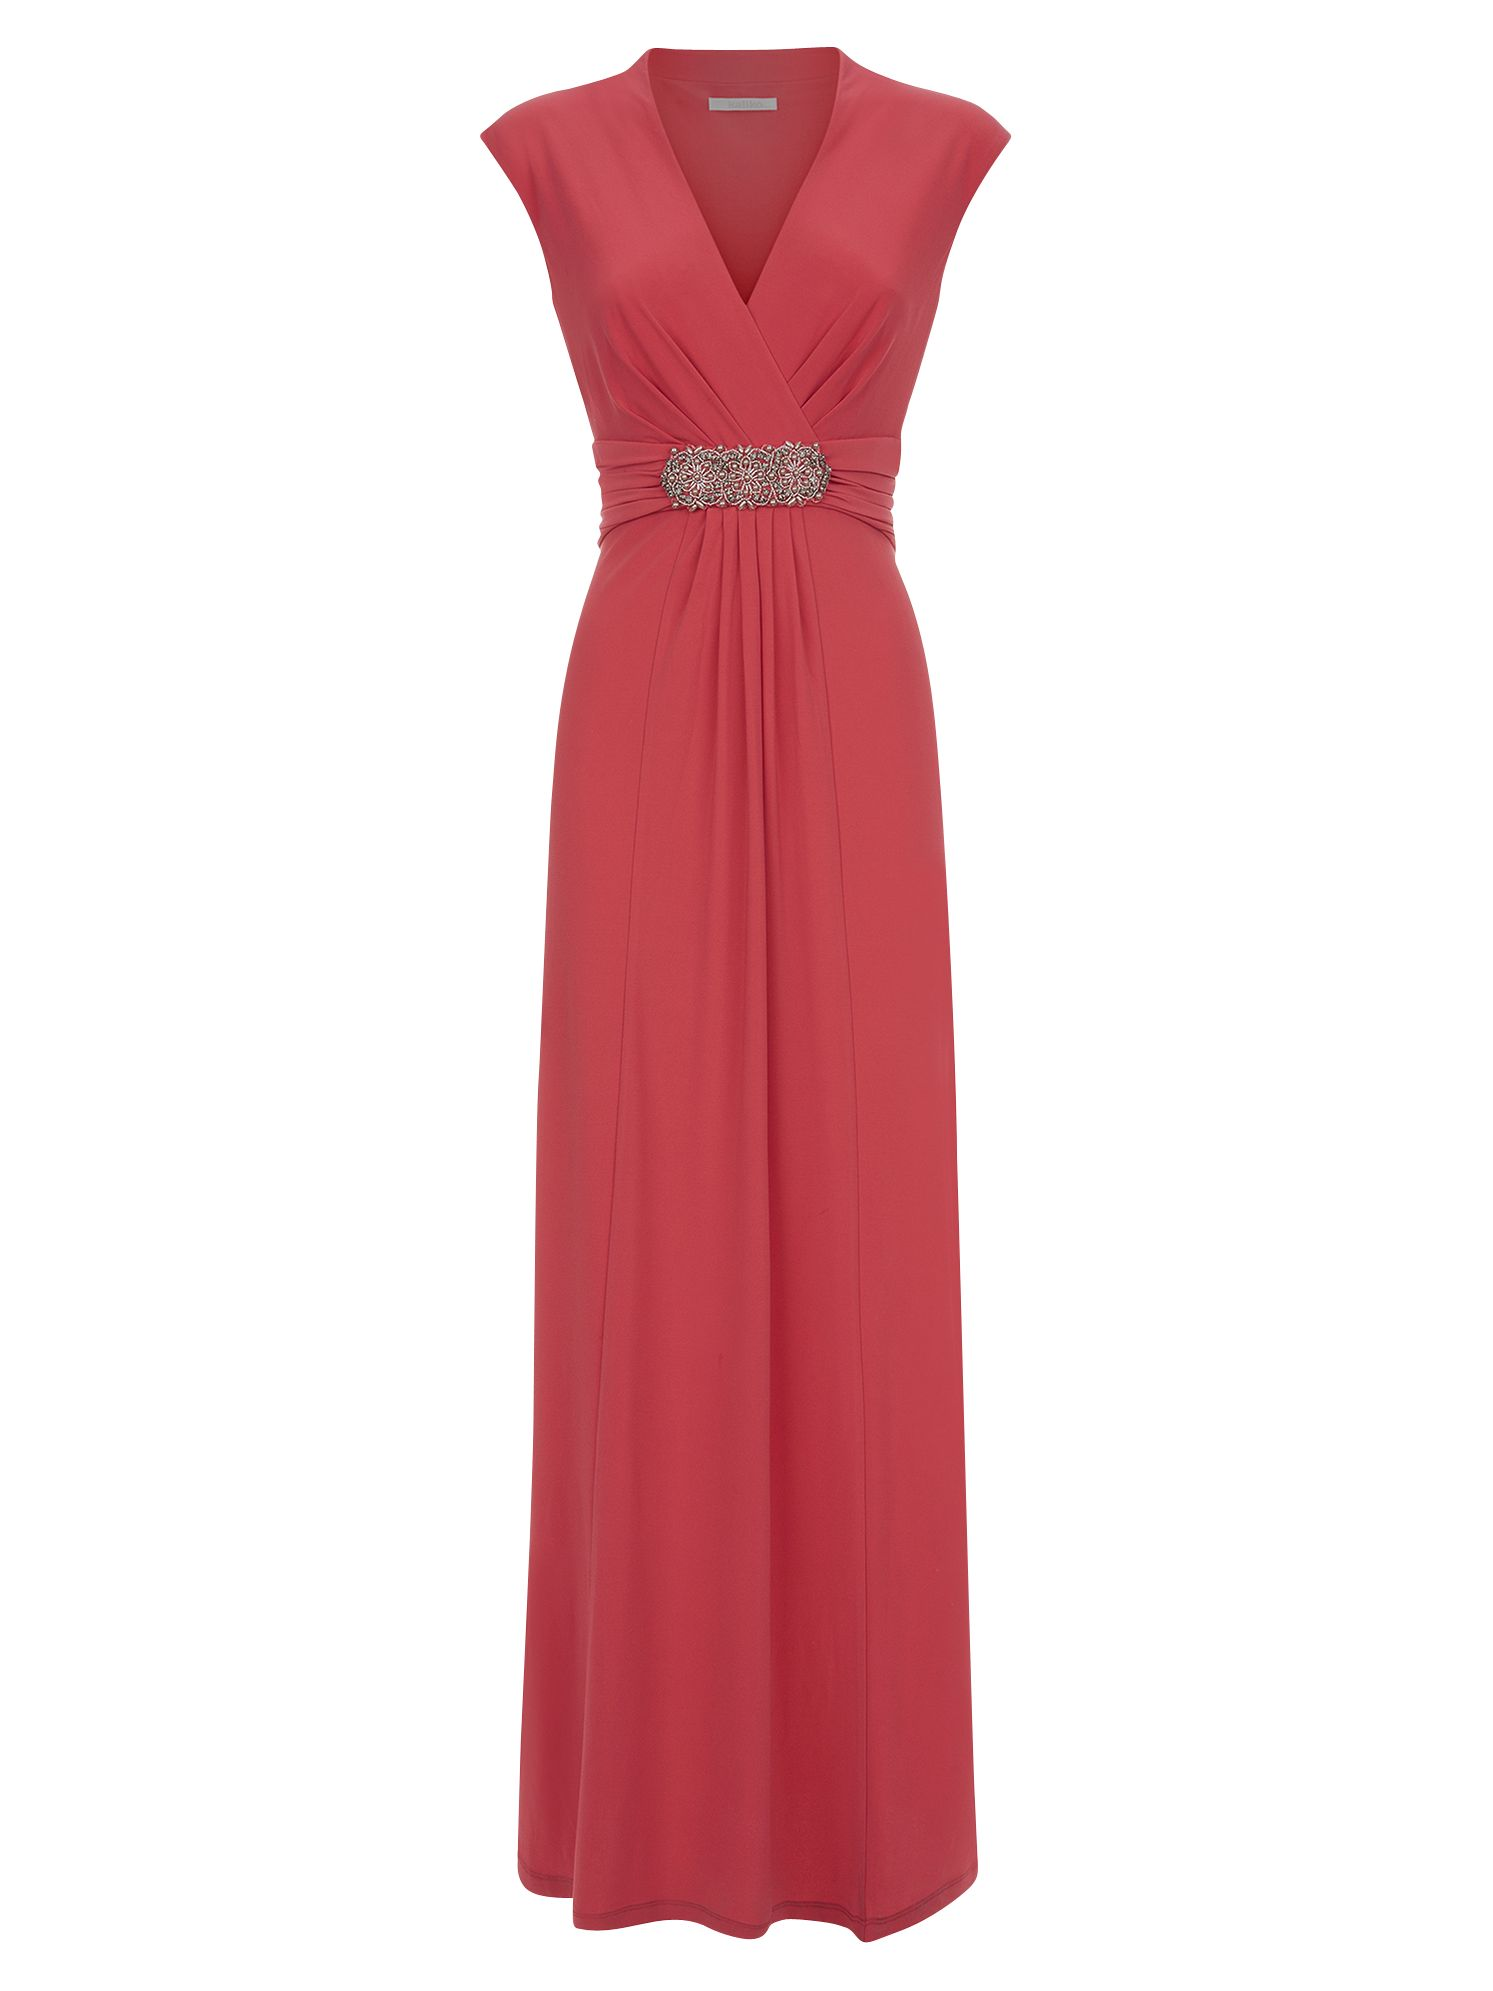 kaliko embellished waistband maxi dress pastel orange, kaliko, embellished, waistband, maxi, dress, pastel, orange, 8|18|20|16|10|12|14, women, plus size, womens dresses, special offers, womenswear offers, womens dresses offers, gifts, wedding, wedding clothing, adult bridesmaids, 1869522